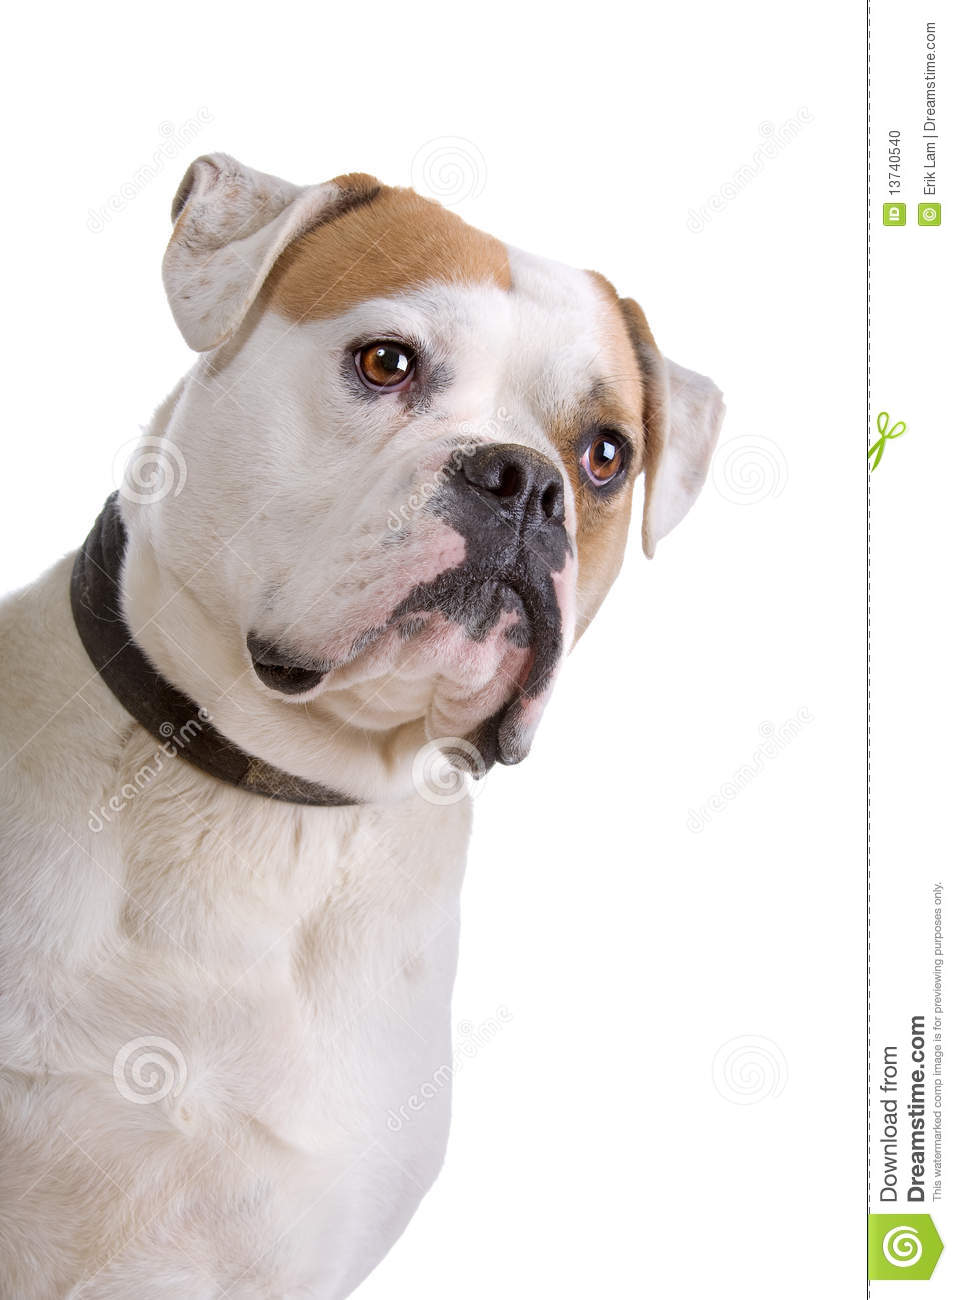 American Bulldog Stock Photo Image 13740540